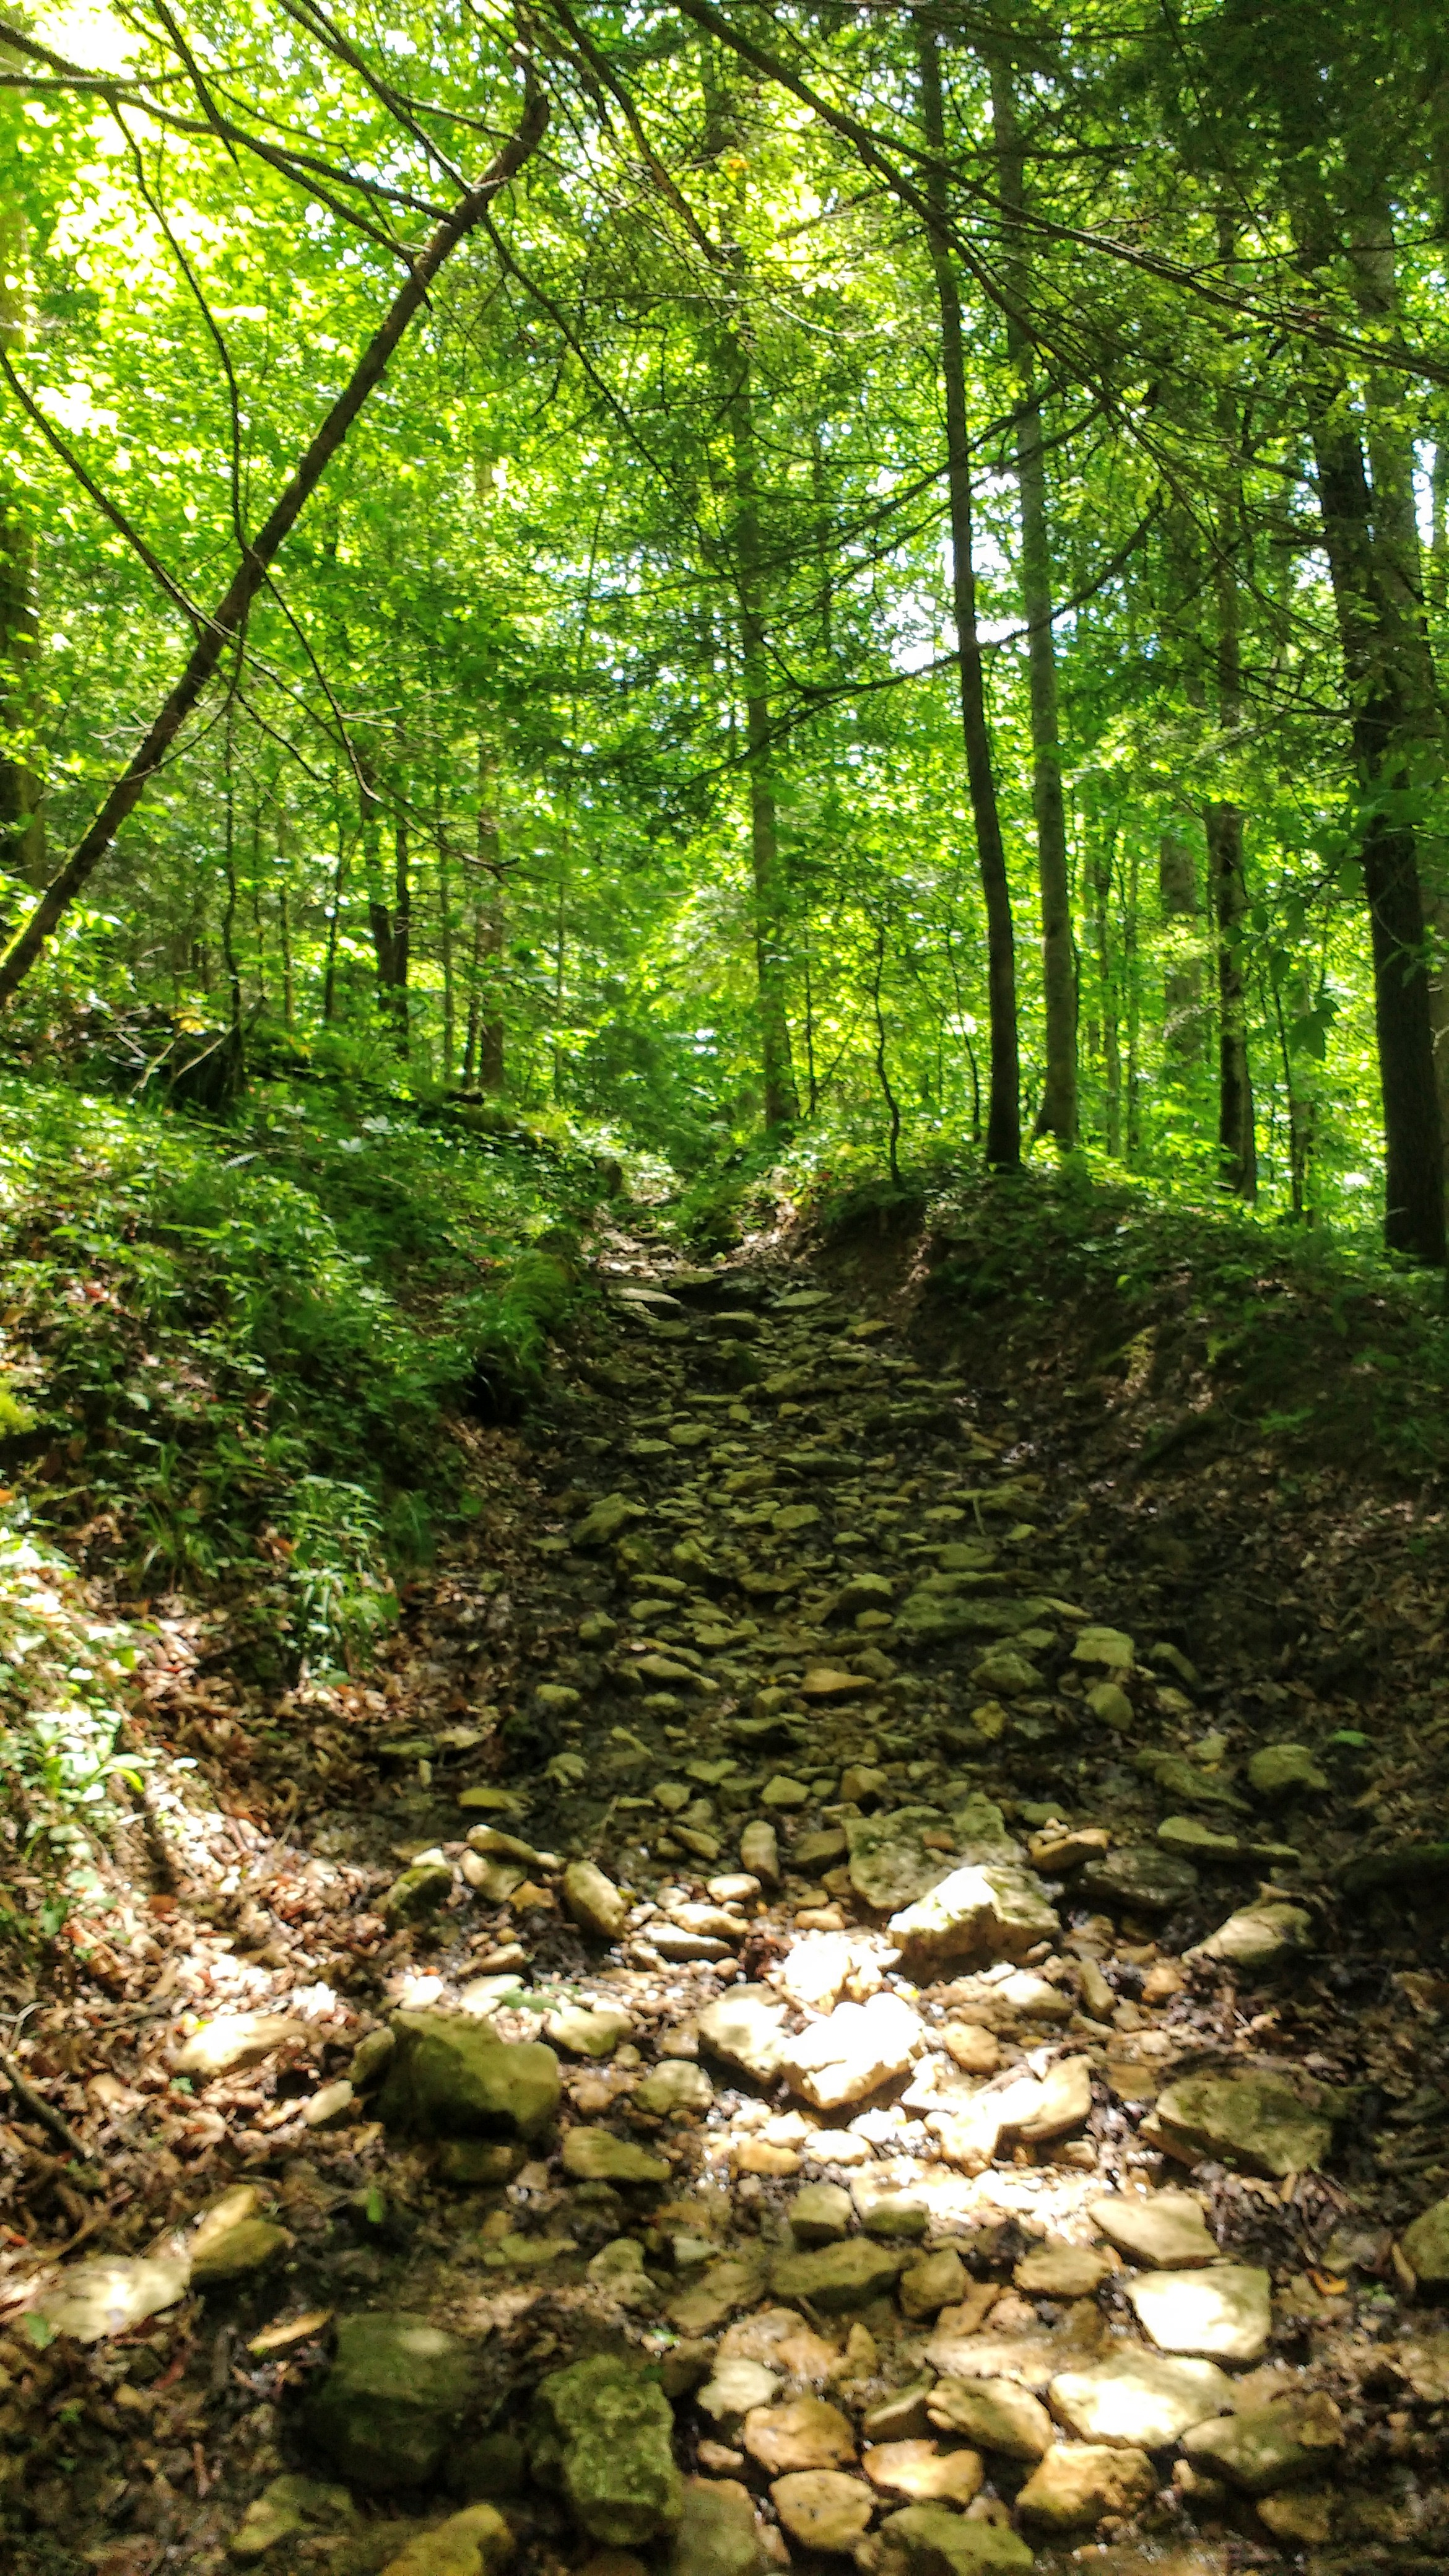 A rocky uphill section on Lost Branch Trail - this is closer to terrain more commonly found on the Appalachian Trail